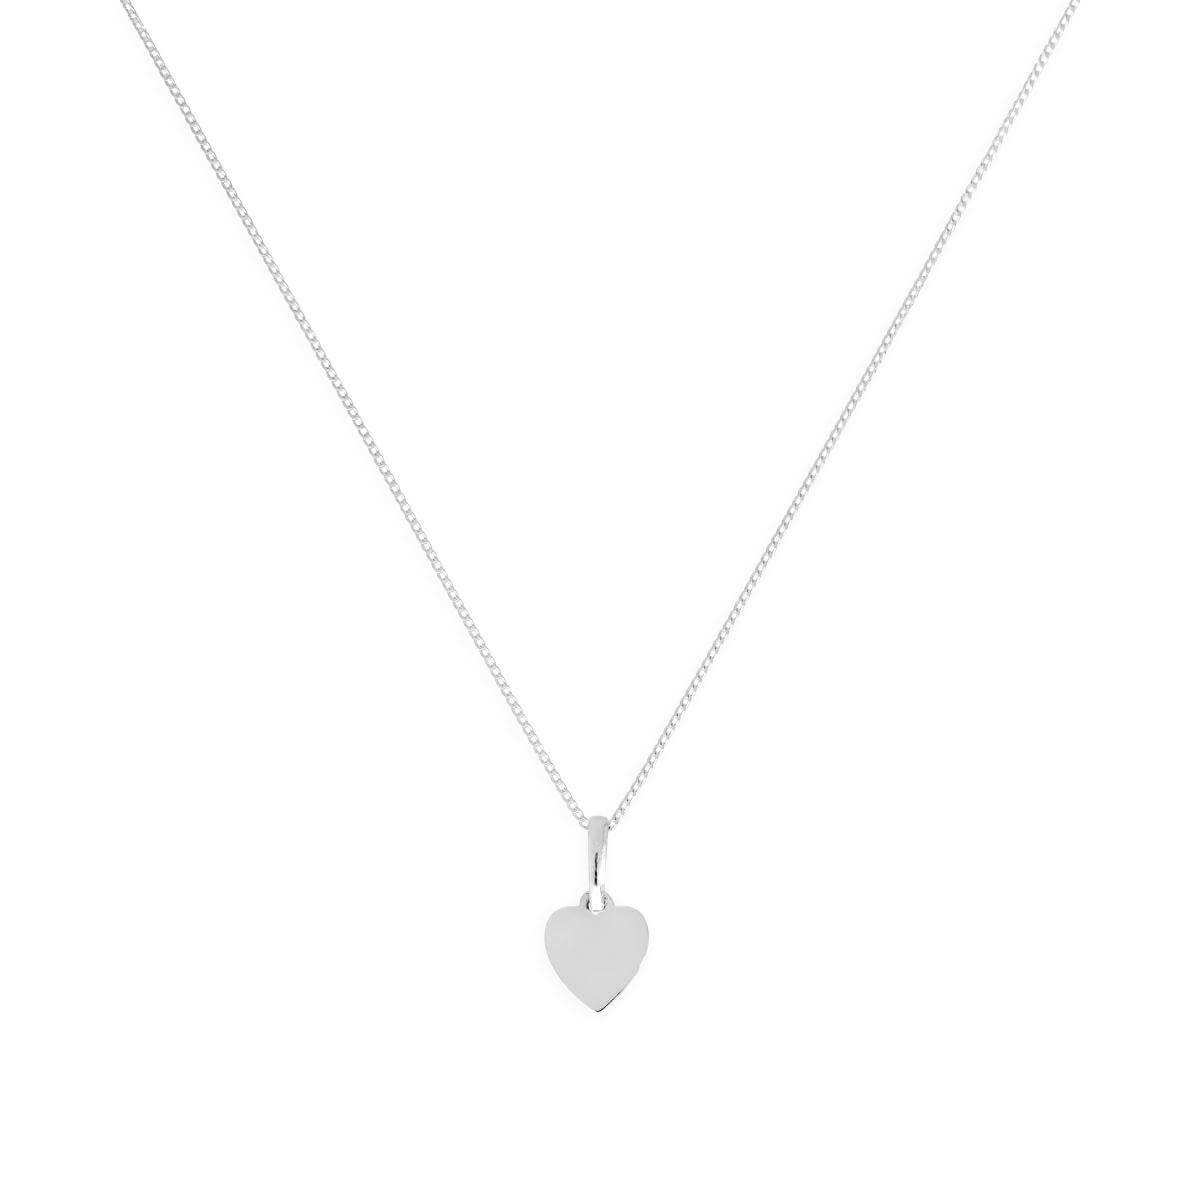 9ct White Gold Small Engravable Heart Pendant on Chain 16 - 20 Inches